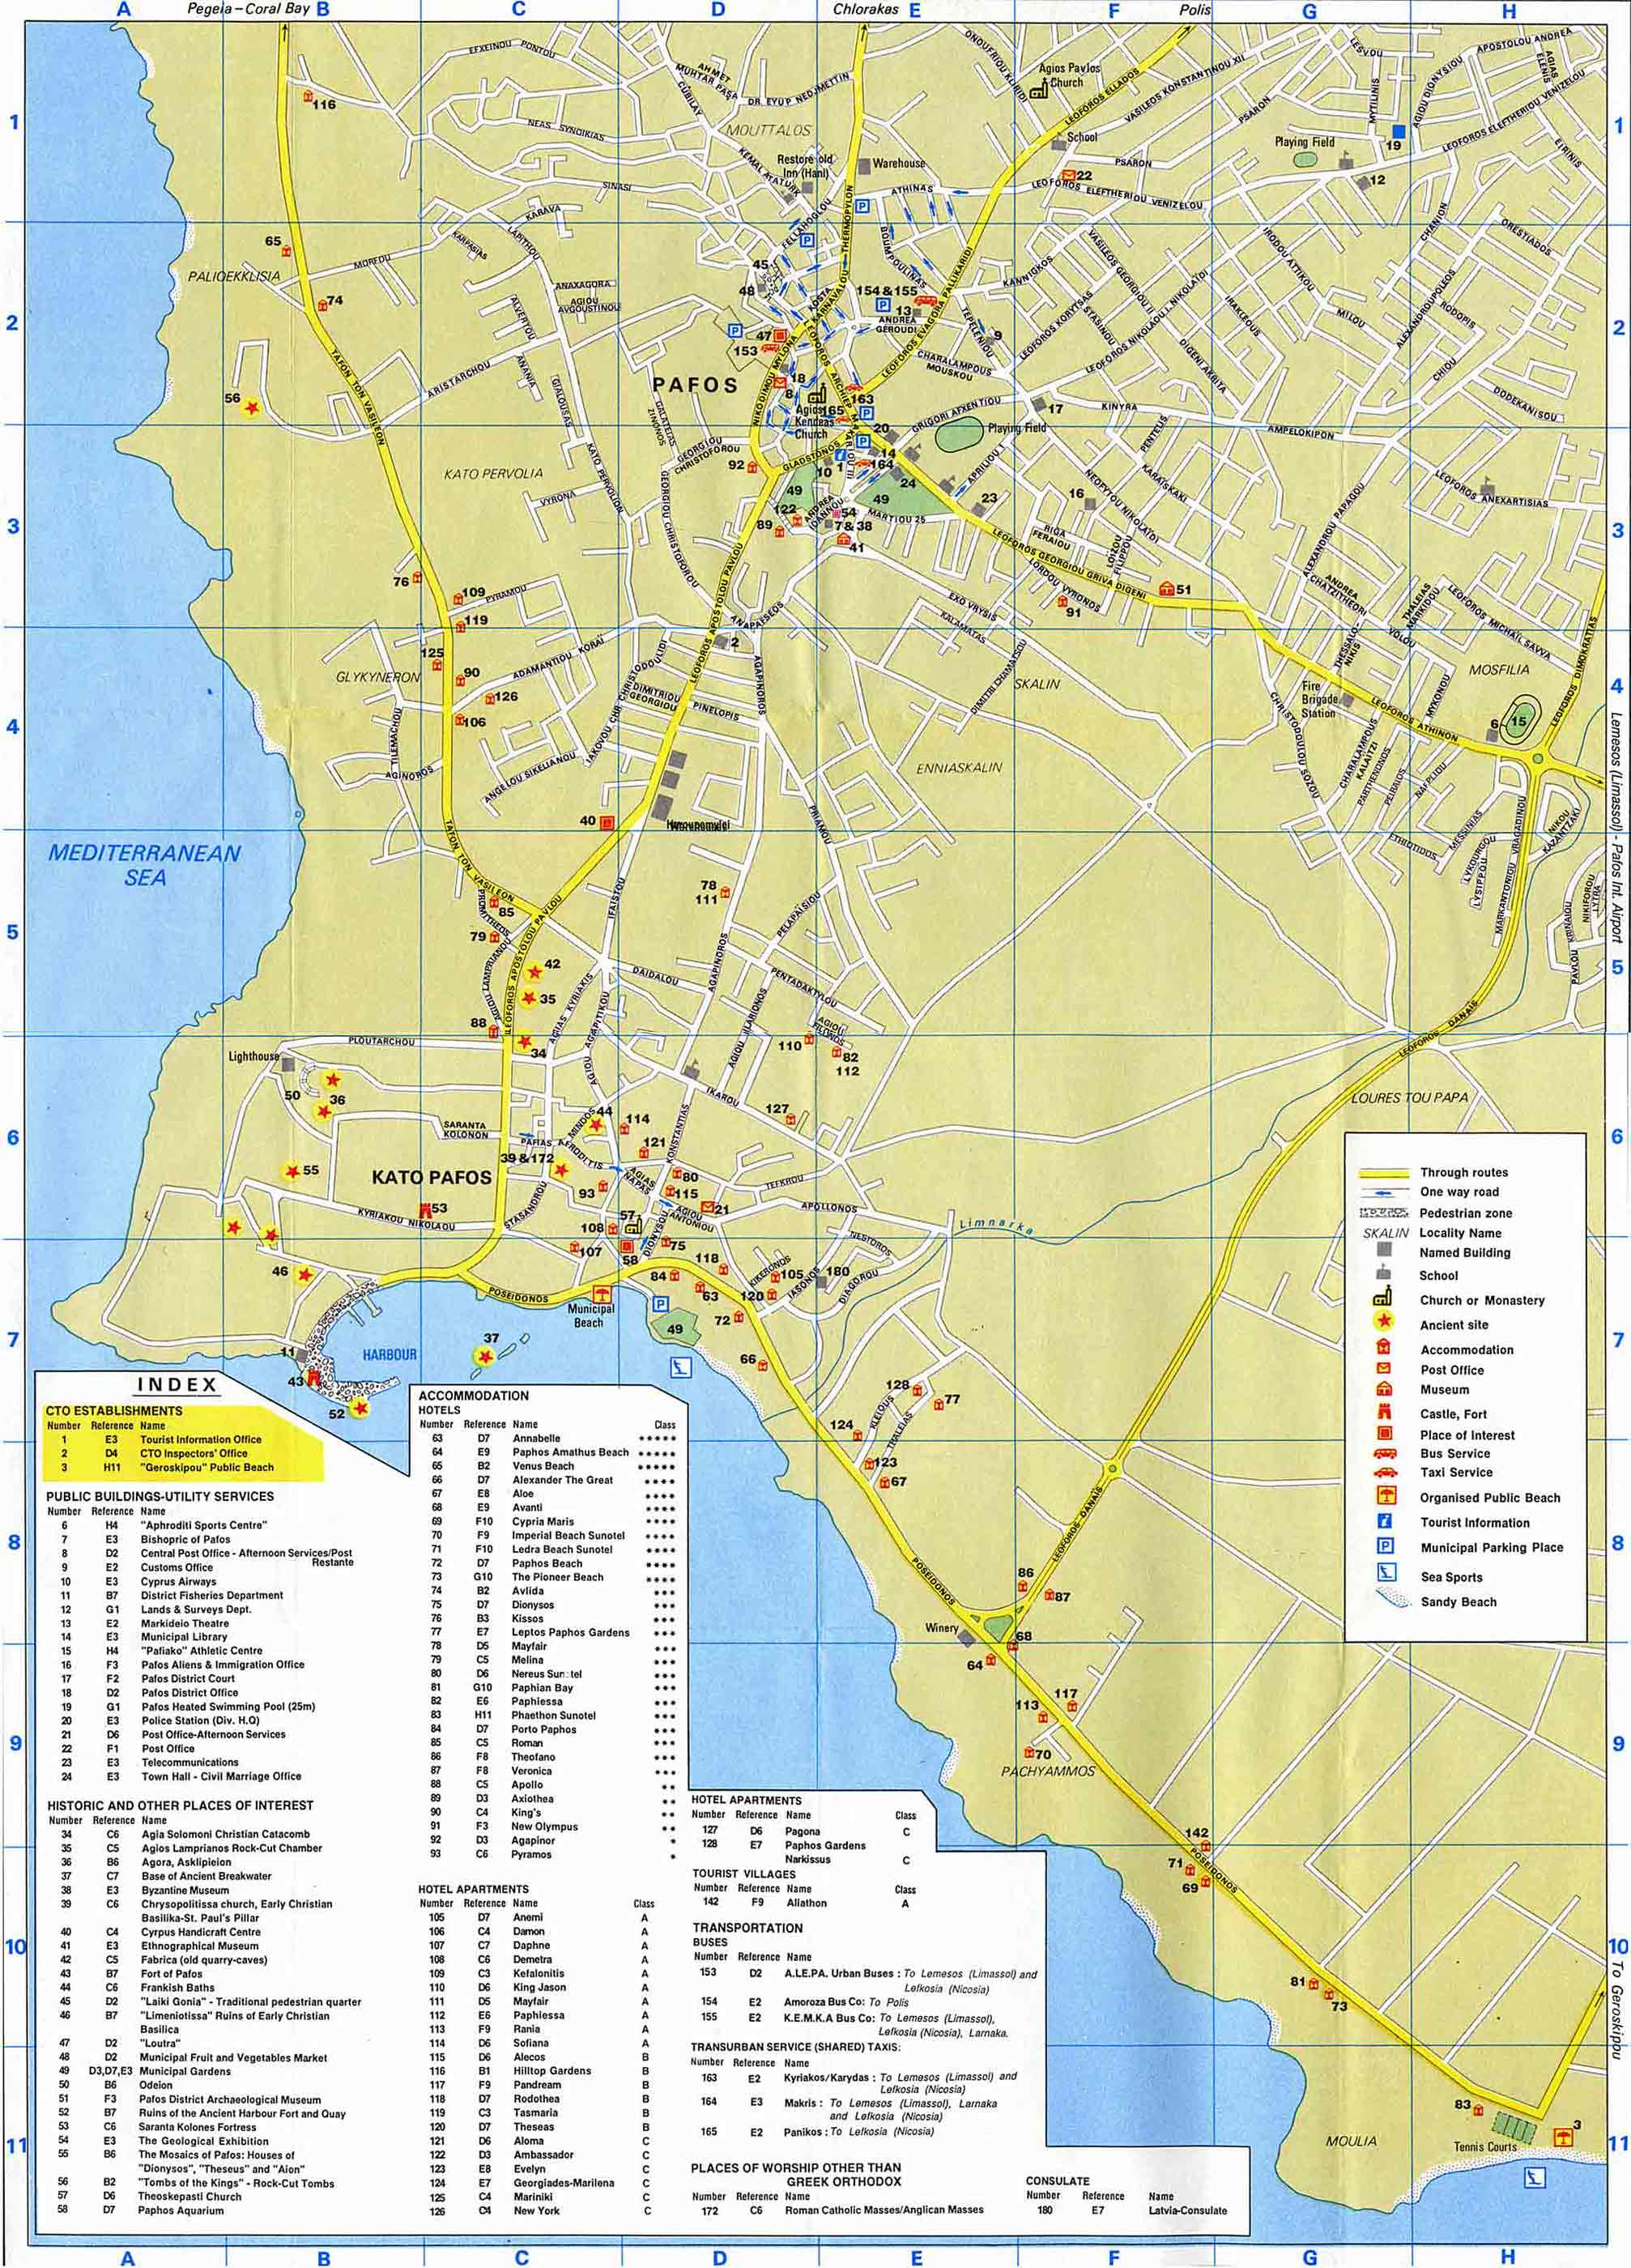 Paphos Maps Paphos area map and Paphos city map